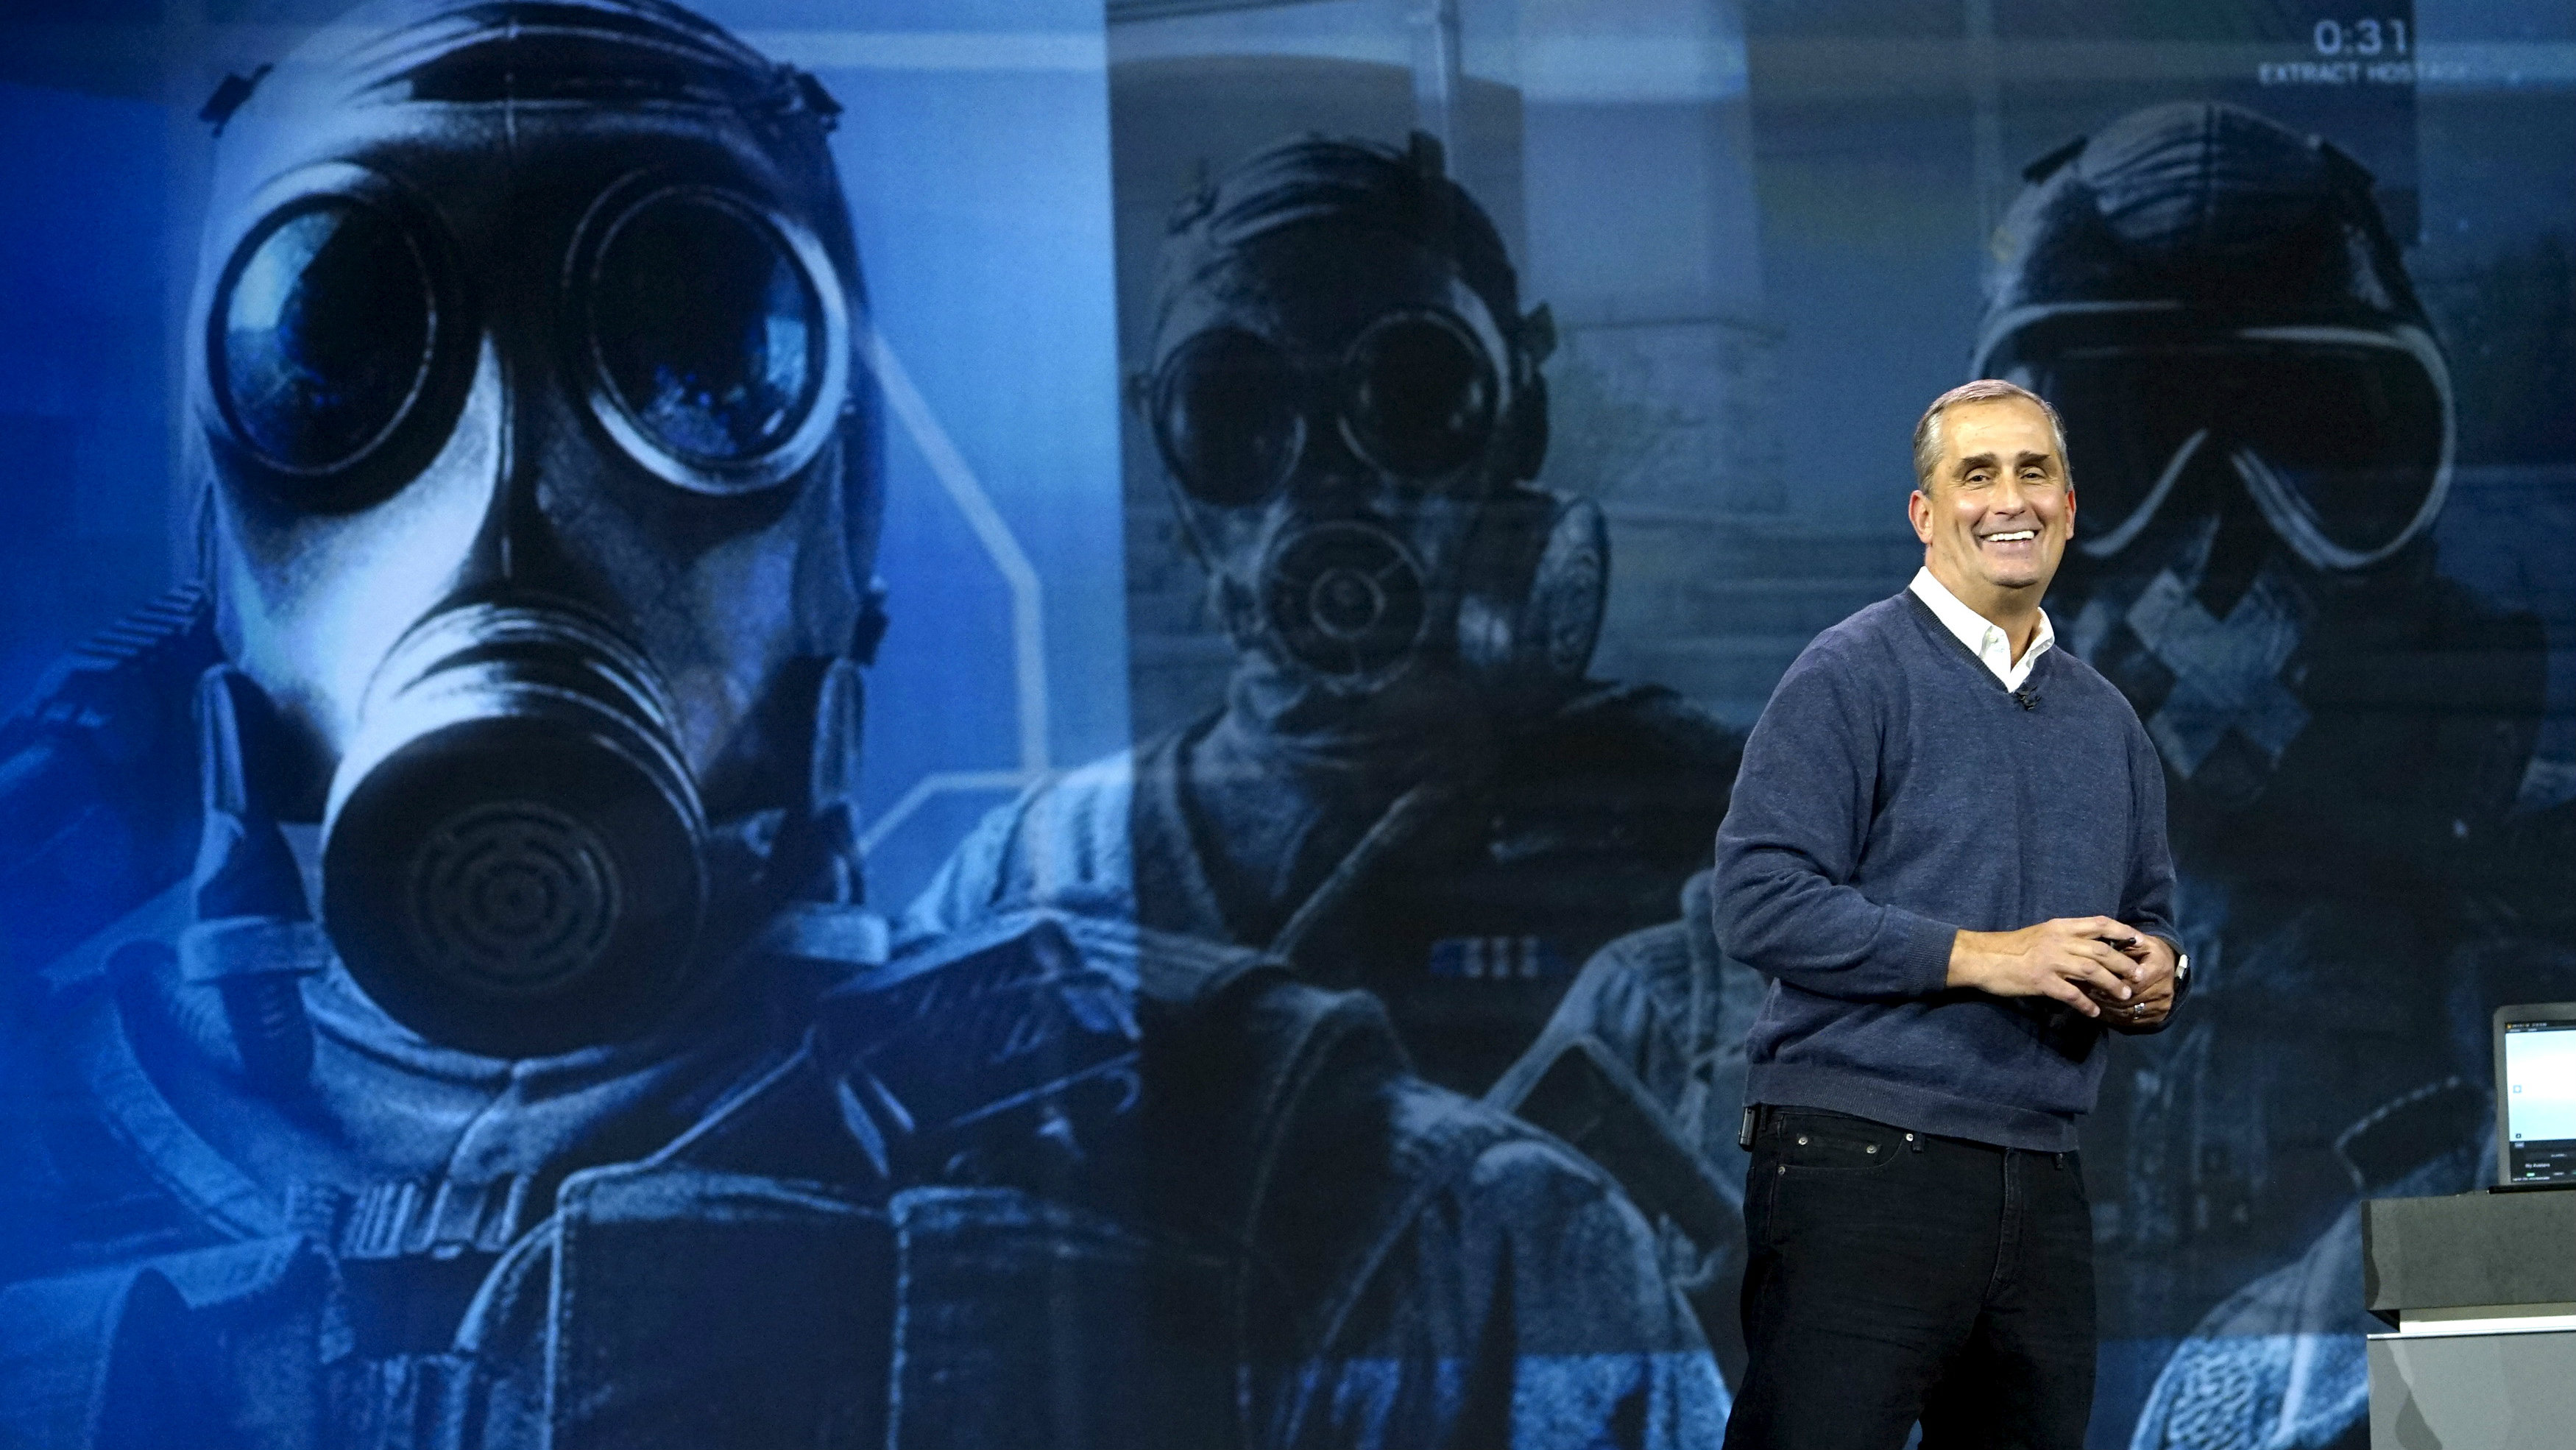 Intel CEO Brian Krzanich smiles in front of a screen showing characters from the computer game Tom Clancy's Rainbow Six Seige during his keynote address at the Consumer Electronics Show in Las Vegas January 5, 2016. REUTERS/Rick Wilking